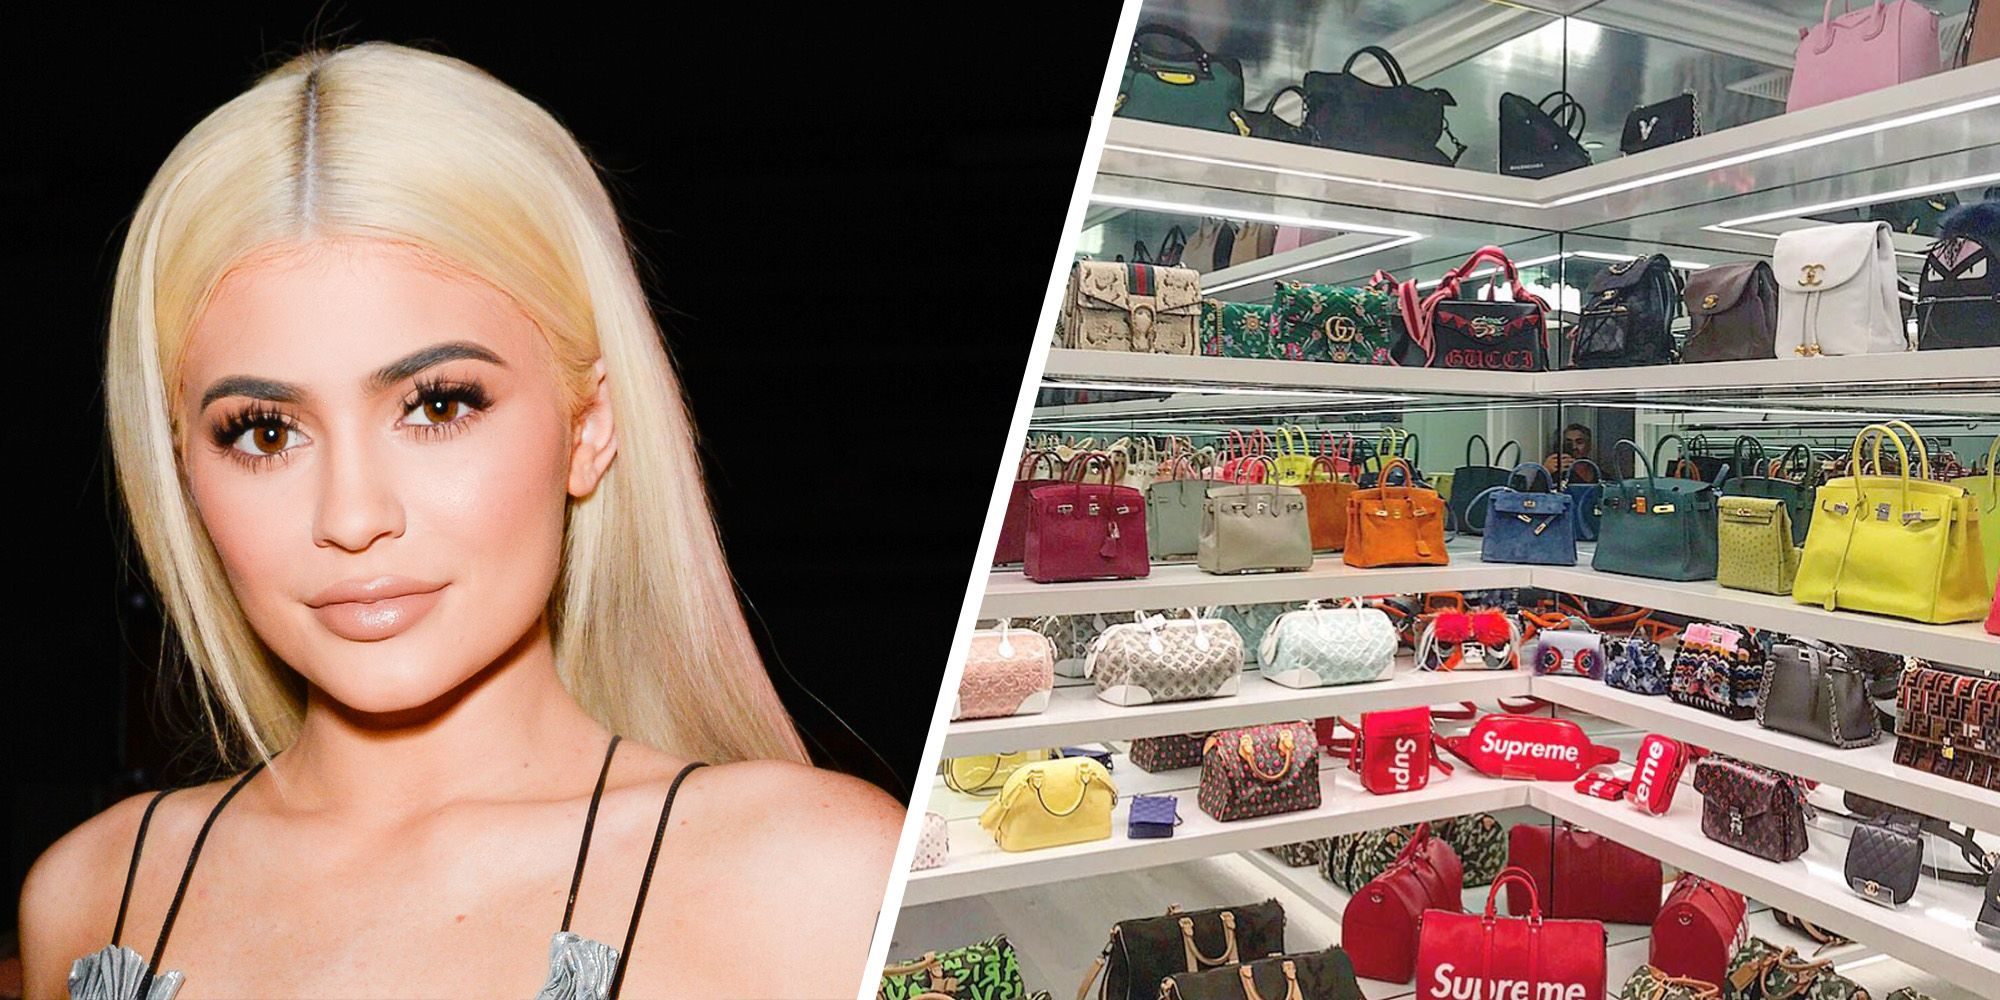 An inside look at Kylie Jenners over the top purse collection